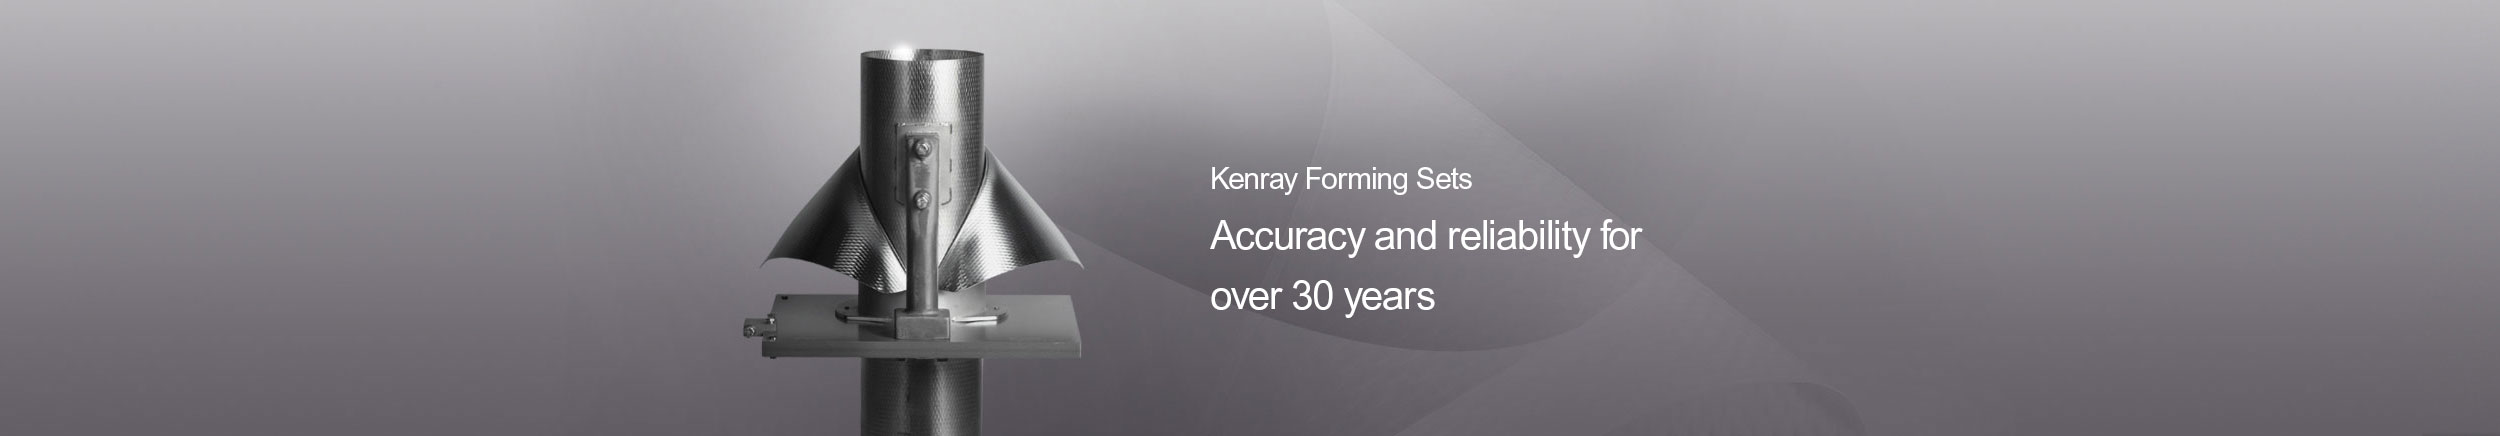 Classic Forming Sets - Kenray Forming, Forming Sets, VFFS, Packaging